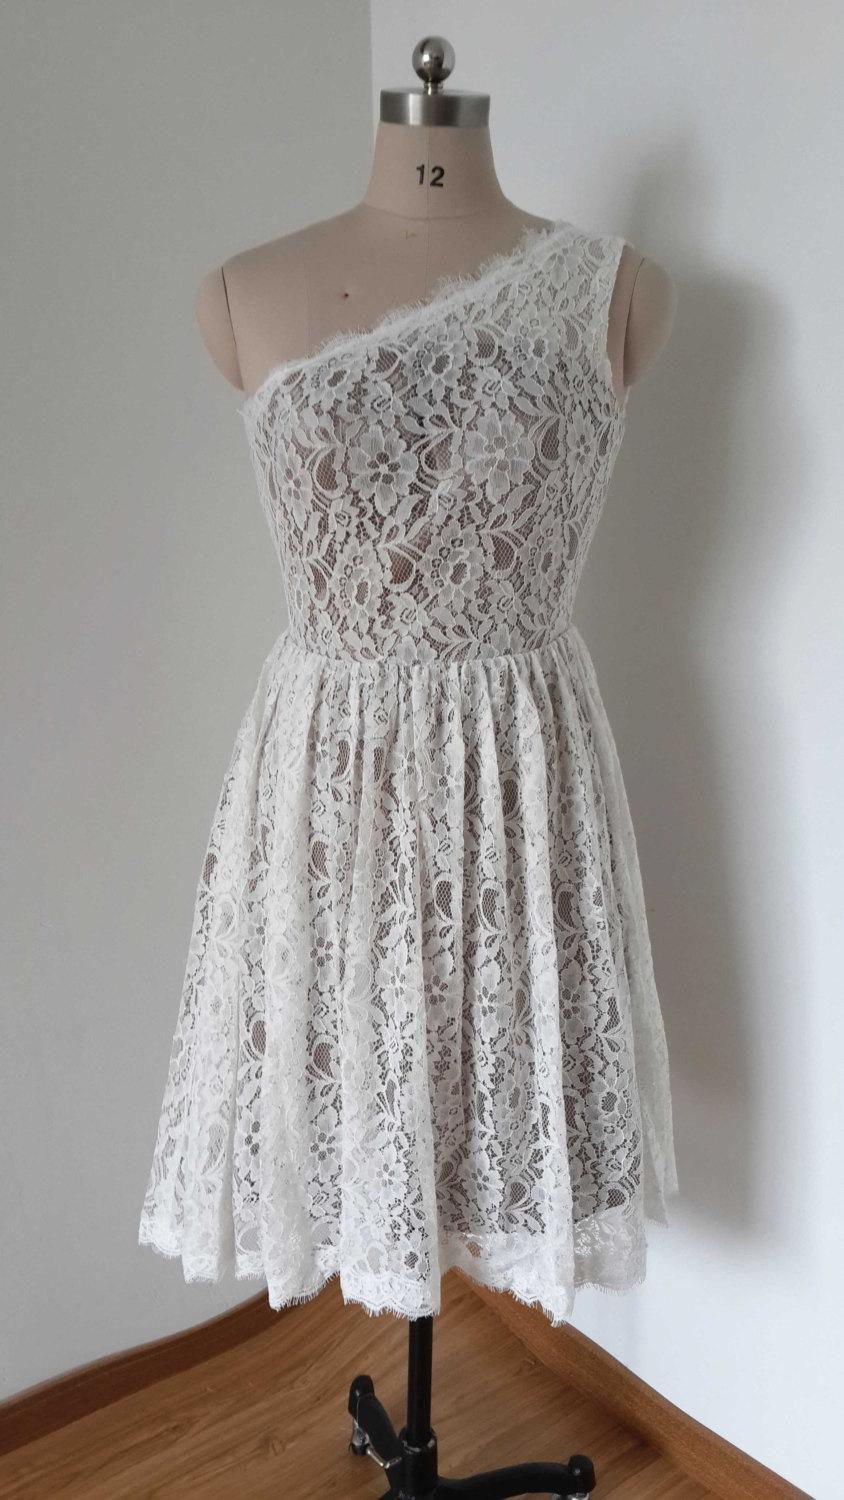 Mariage - 2015 One-shoulder Ivory Lace Silver Lining Short Bridesmaid Dress